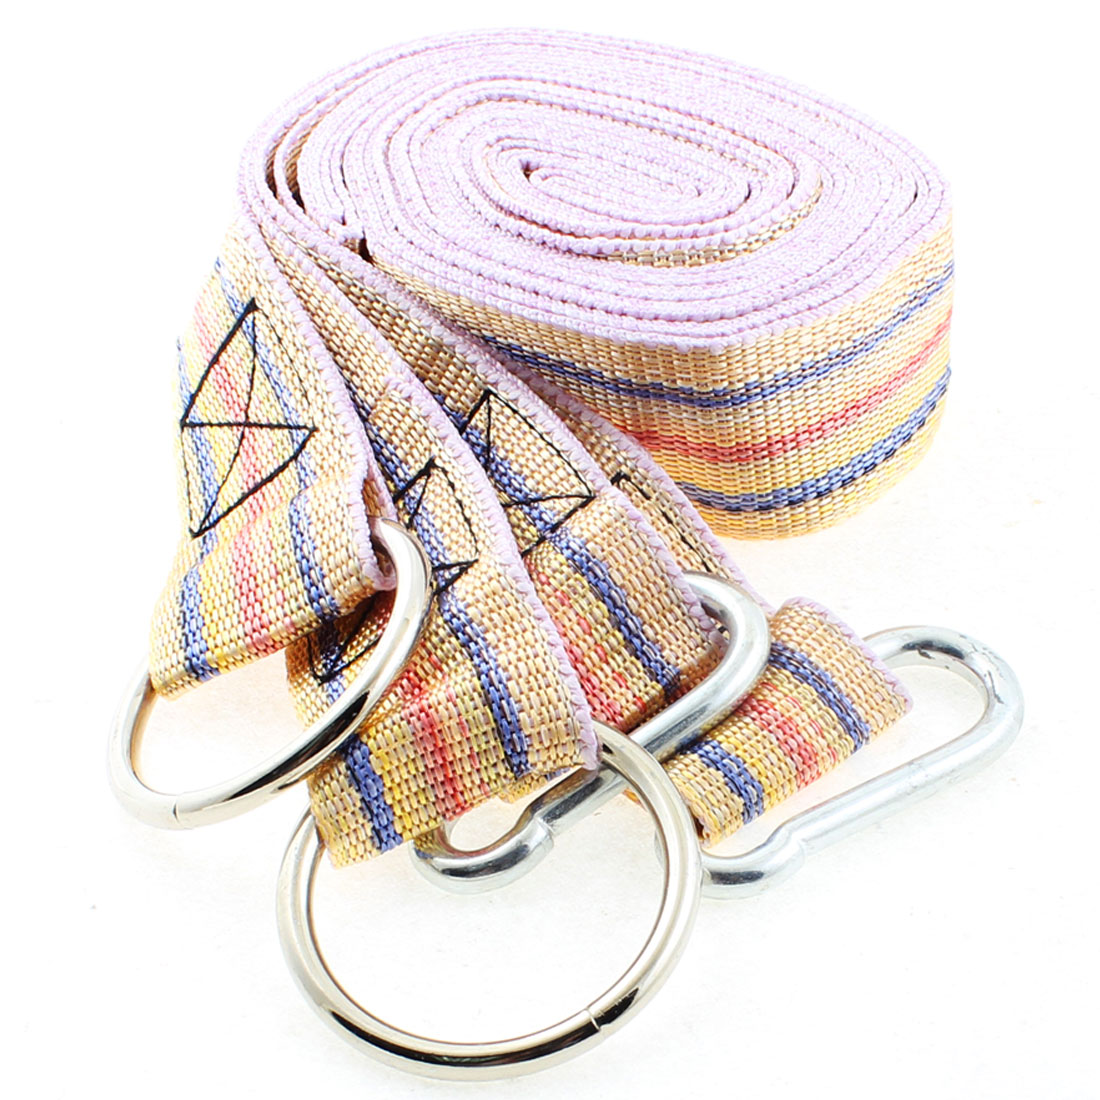 2 Pcs Metal Ring Carabiner Hook Yellow Nylon Hammock Strap Band 3.8cm Width 2.5M by Unique-Bargains